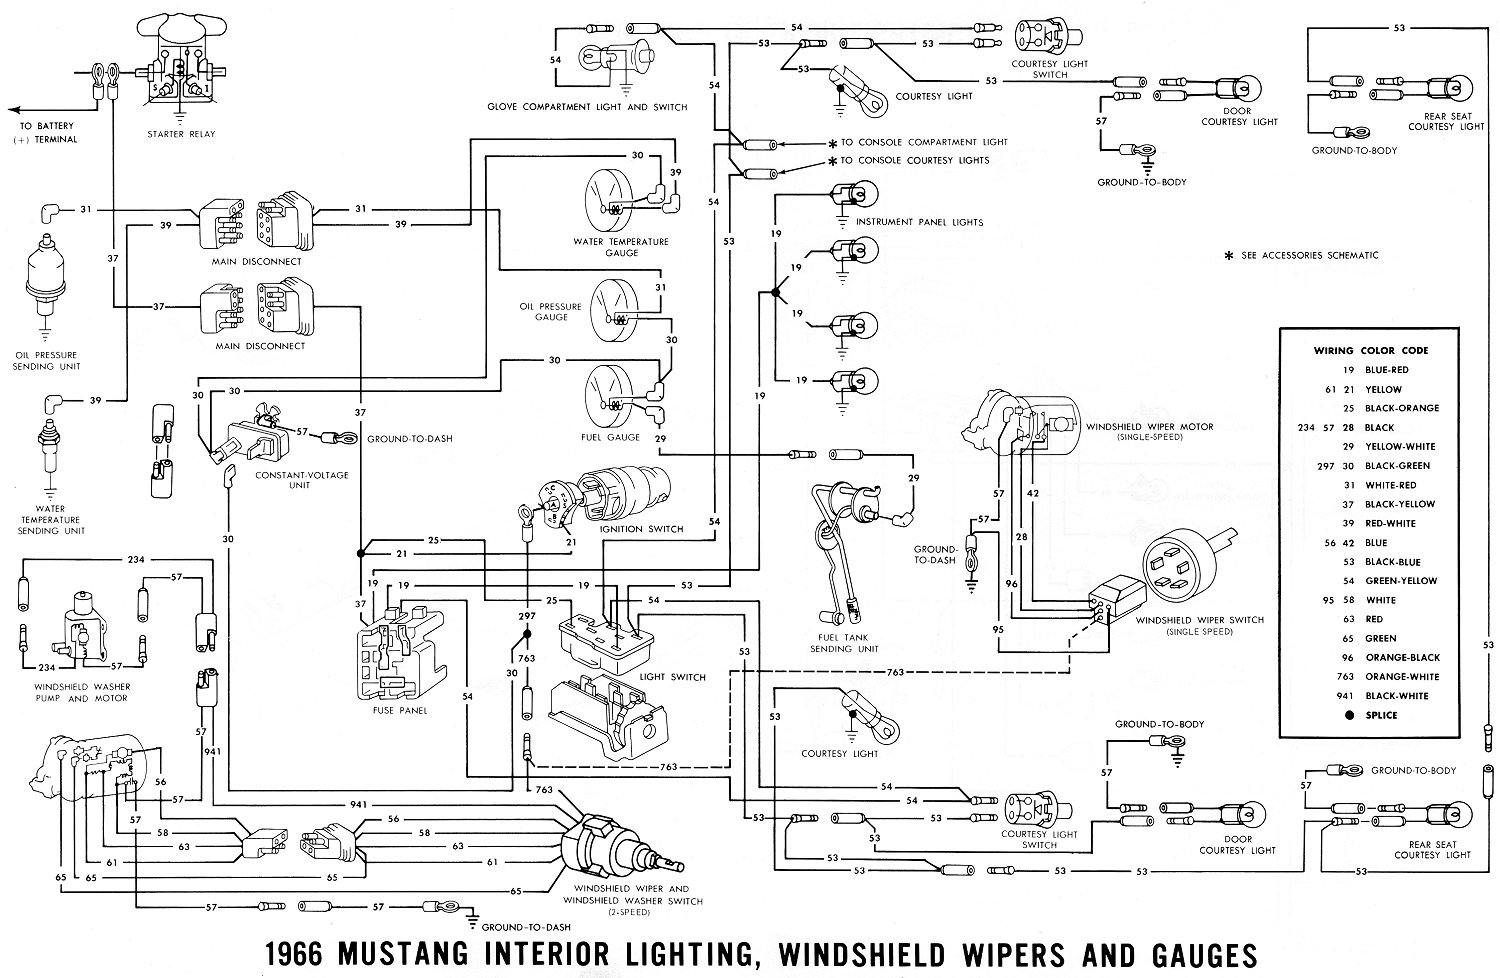 66inter1 1966 mustang wiring diagrams average joe restoration 1965 mustang alternator wiring diagram at aneh.co